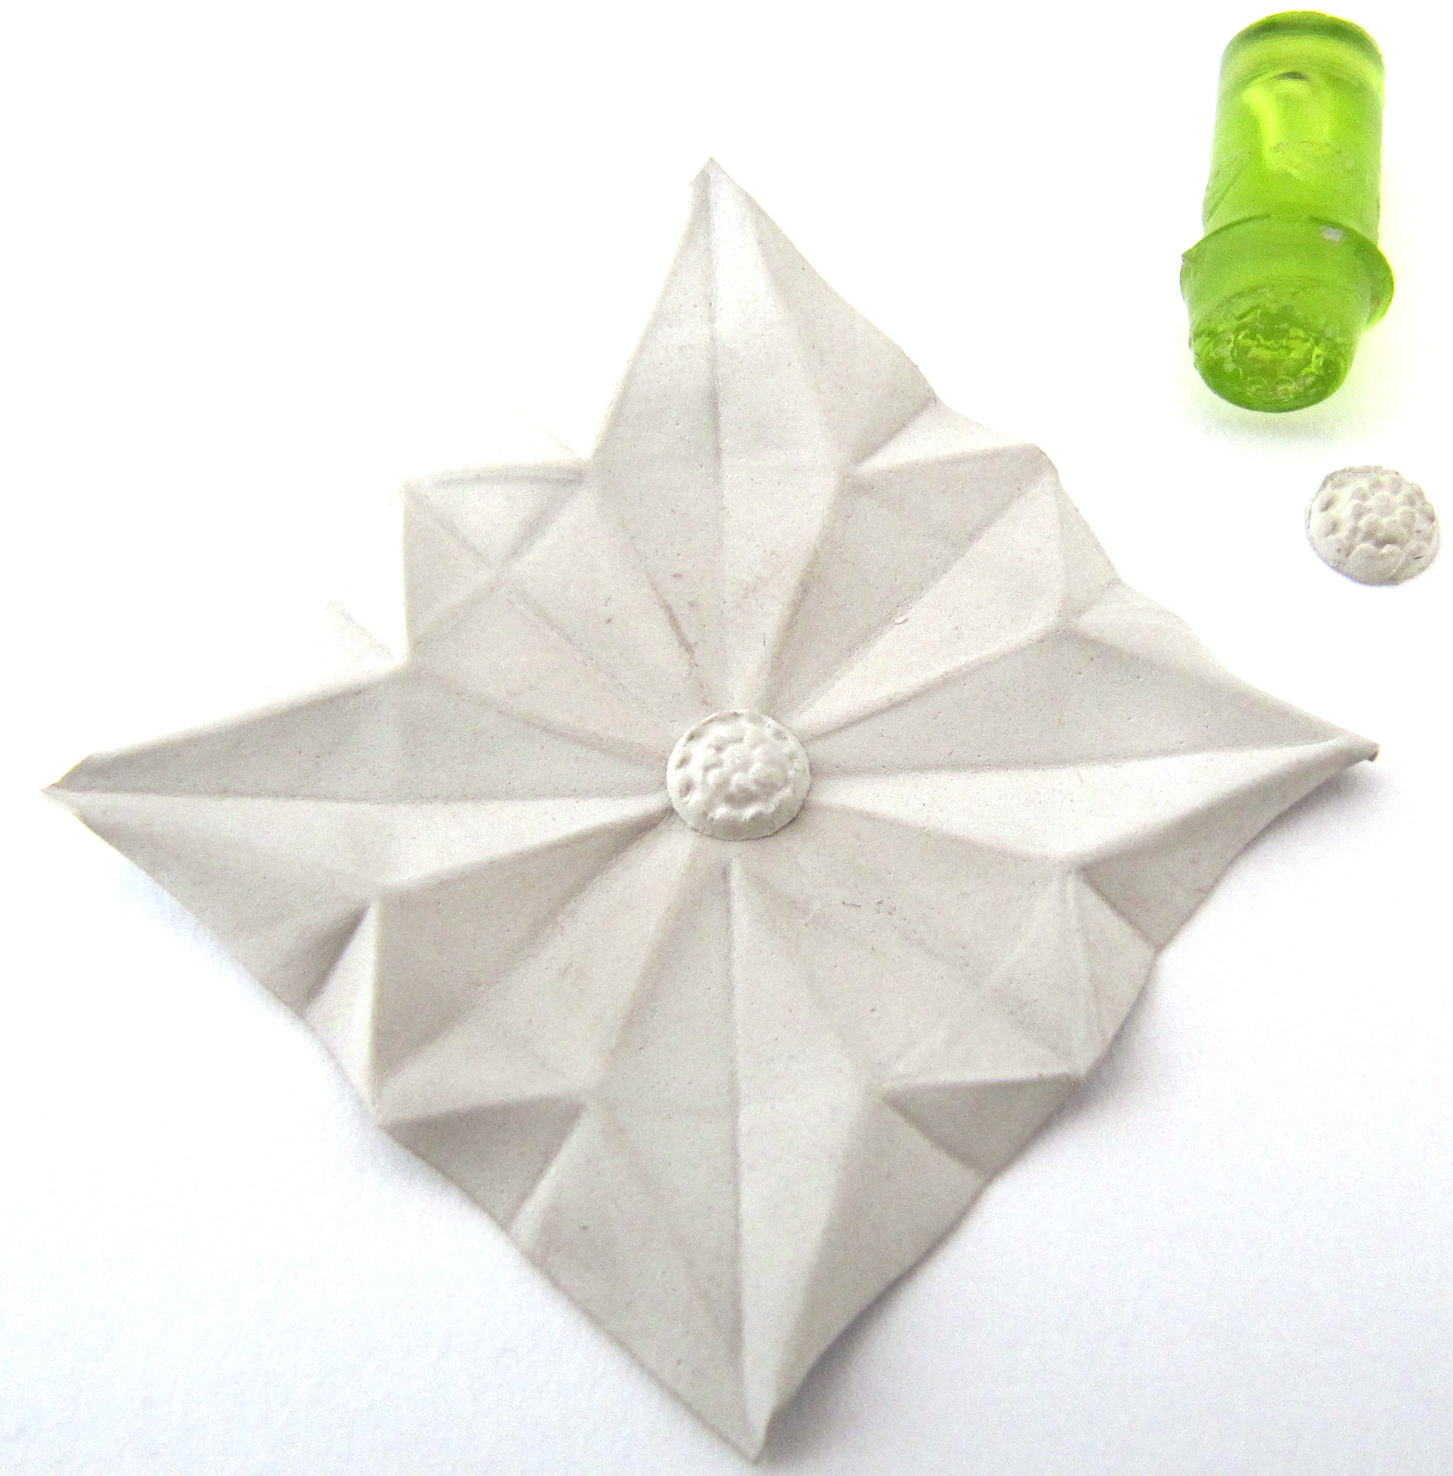 Basic Origami Techniques Silver Clay